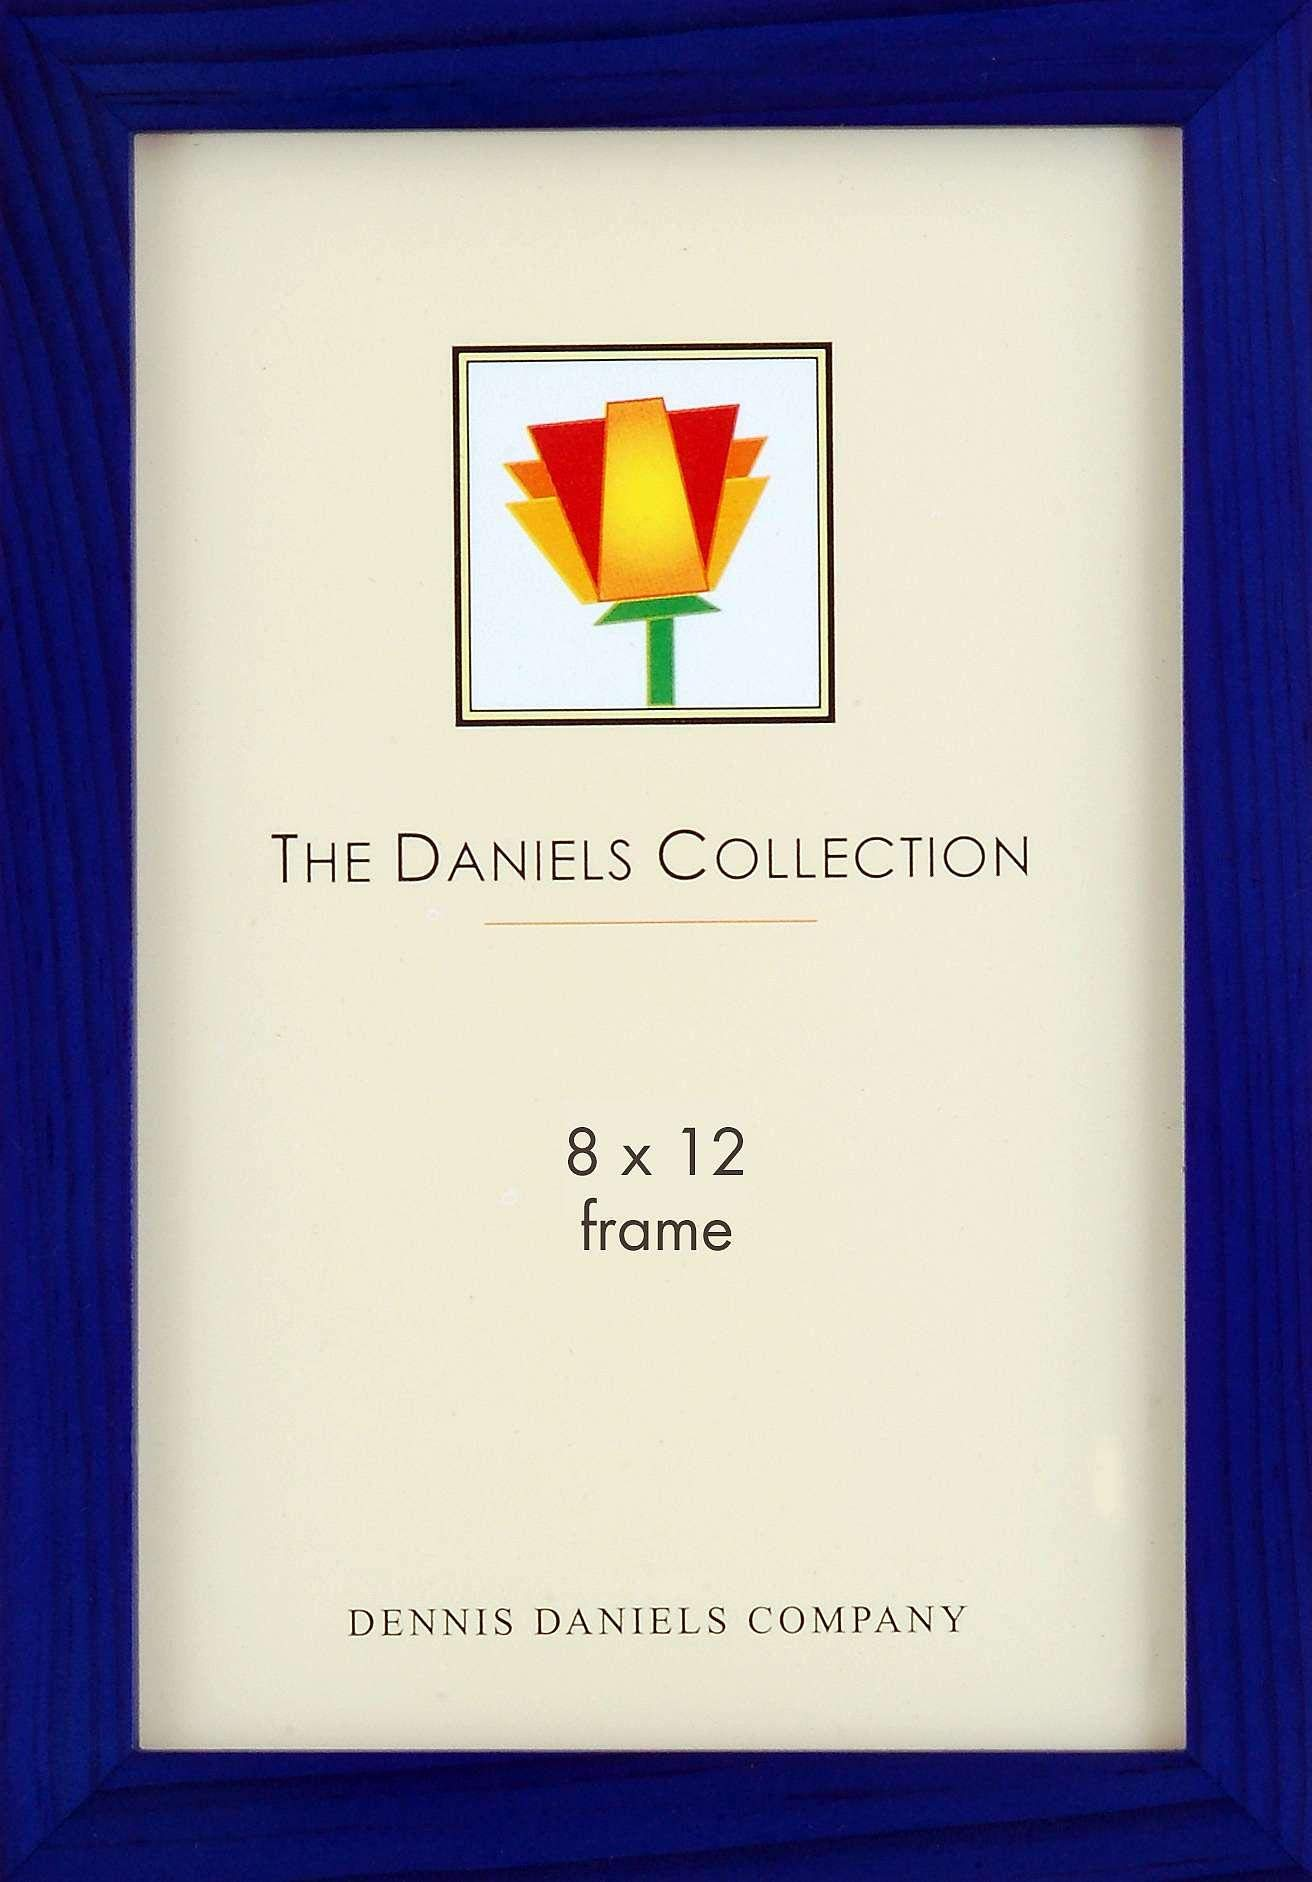 Dennis Daniels Gallery Woods Picture Frame, 8 x 12